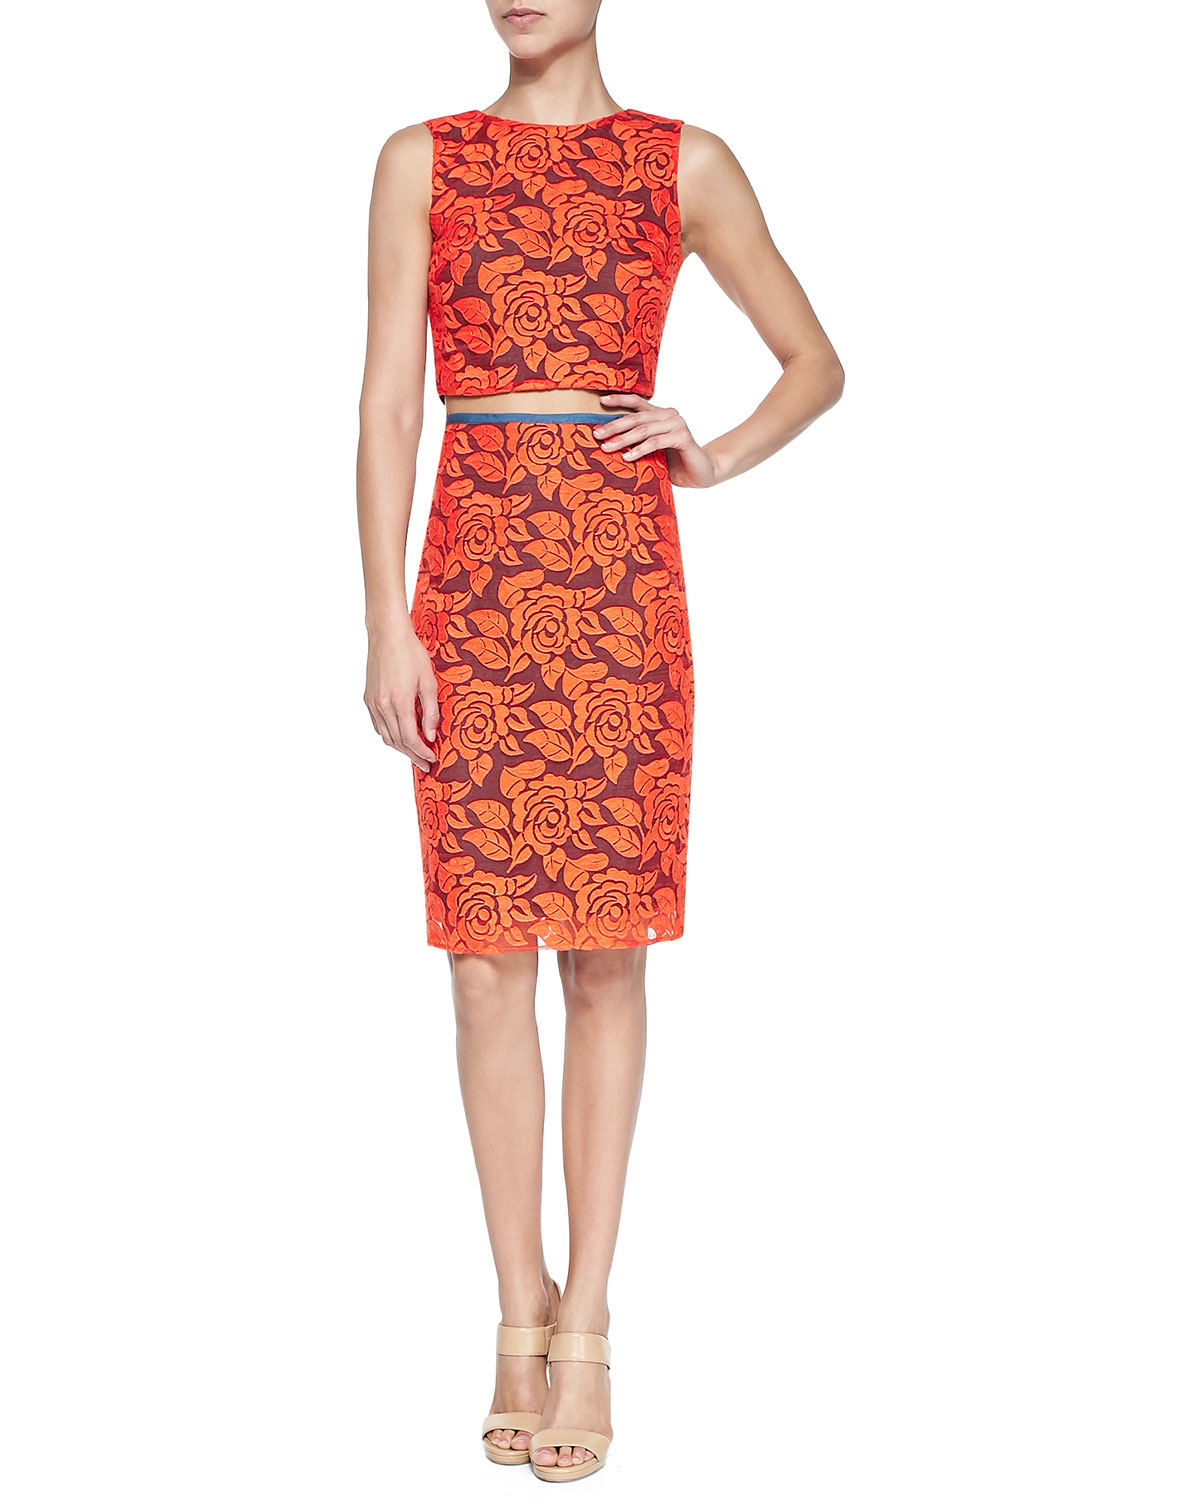 Nicole miller Floral Lace Pencil Skirt in Orange | Lyst